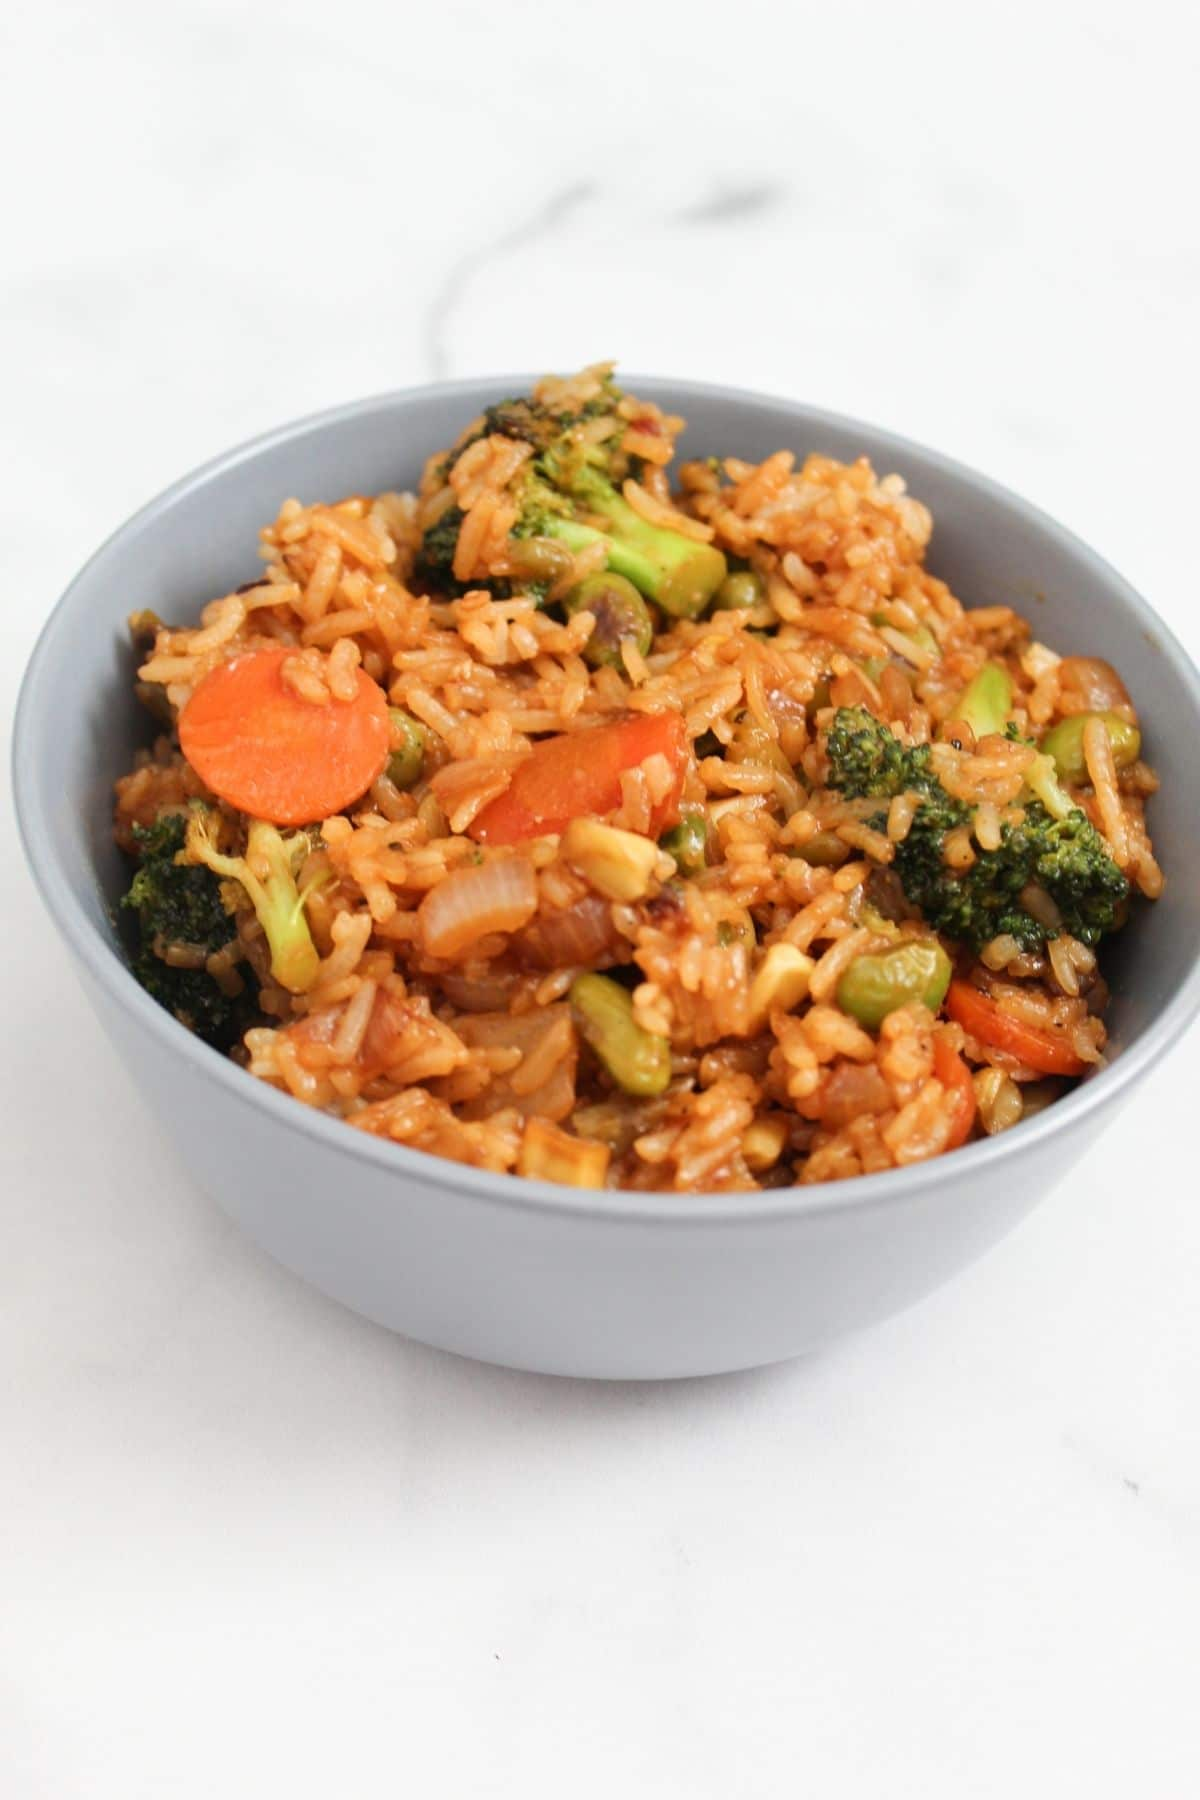 vegetable fried rice finished view on a blue bowl marble surface